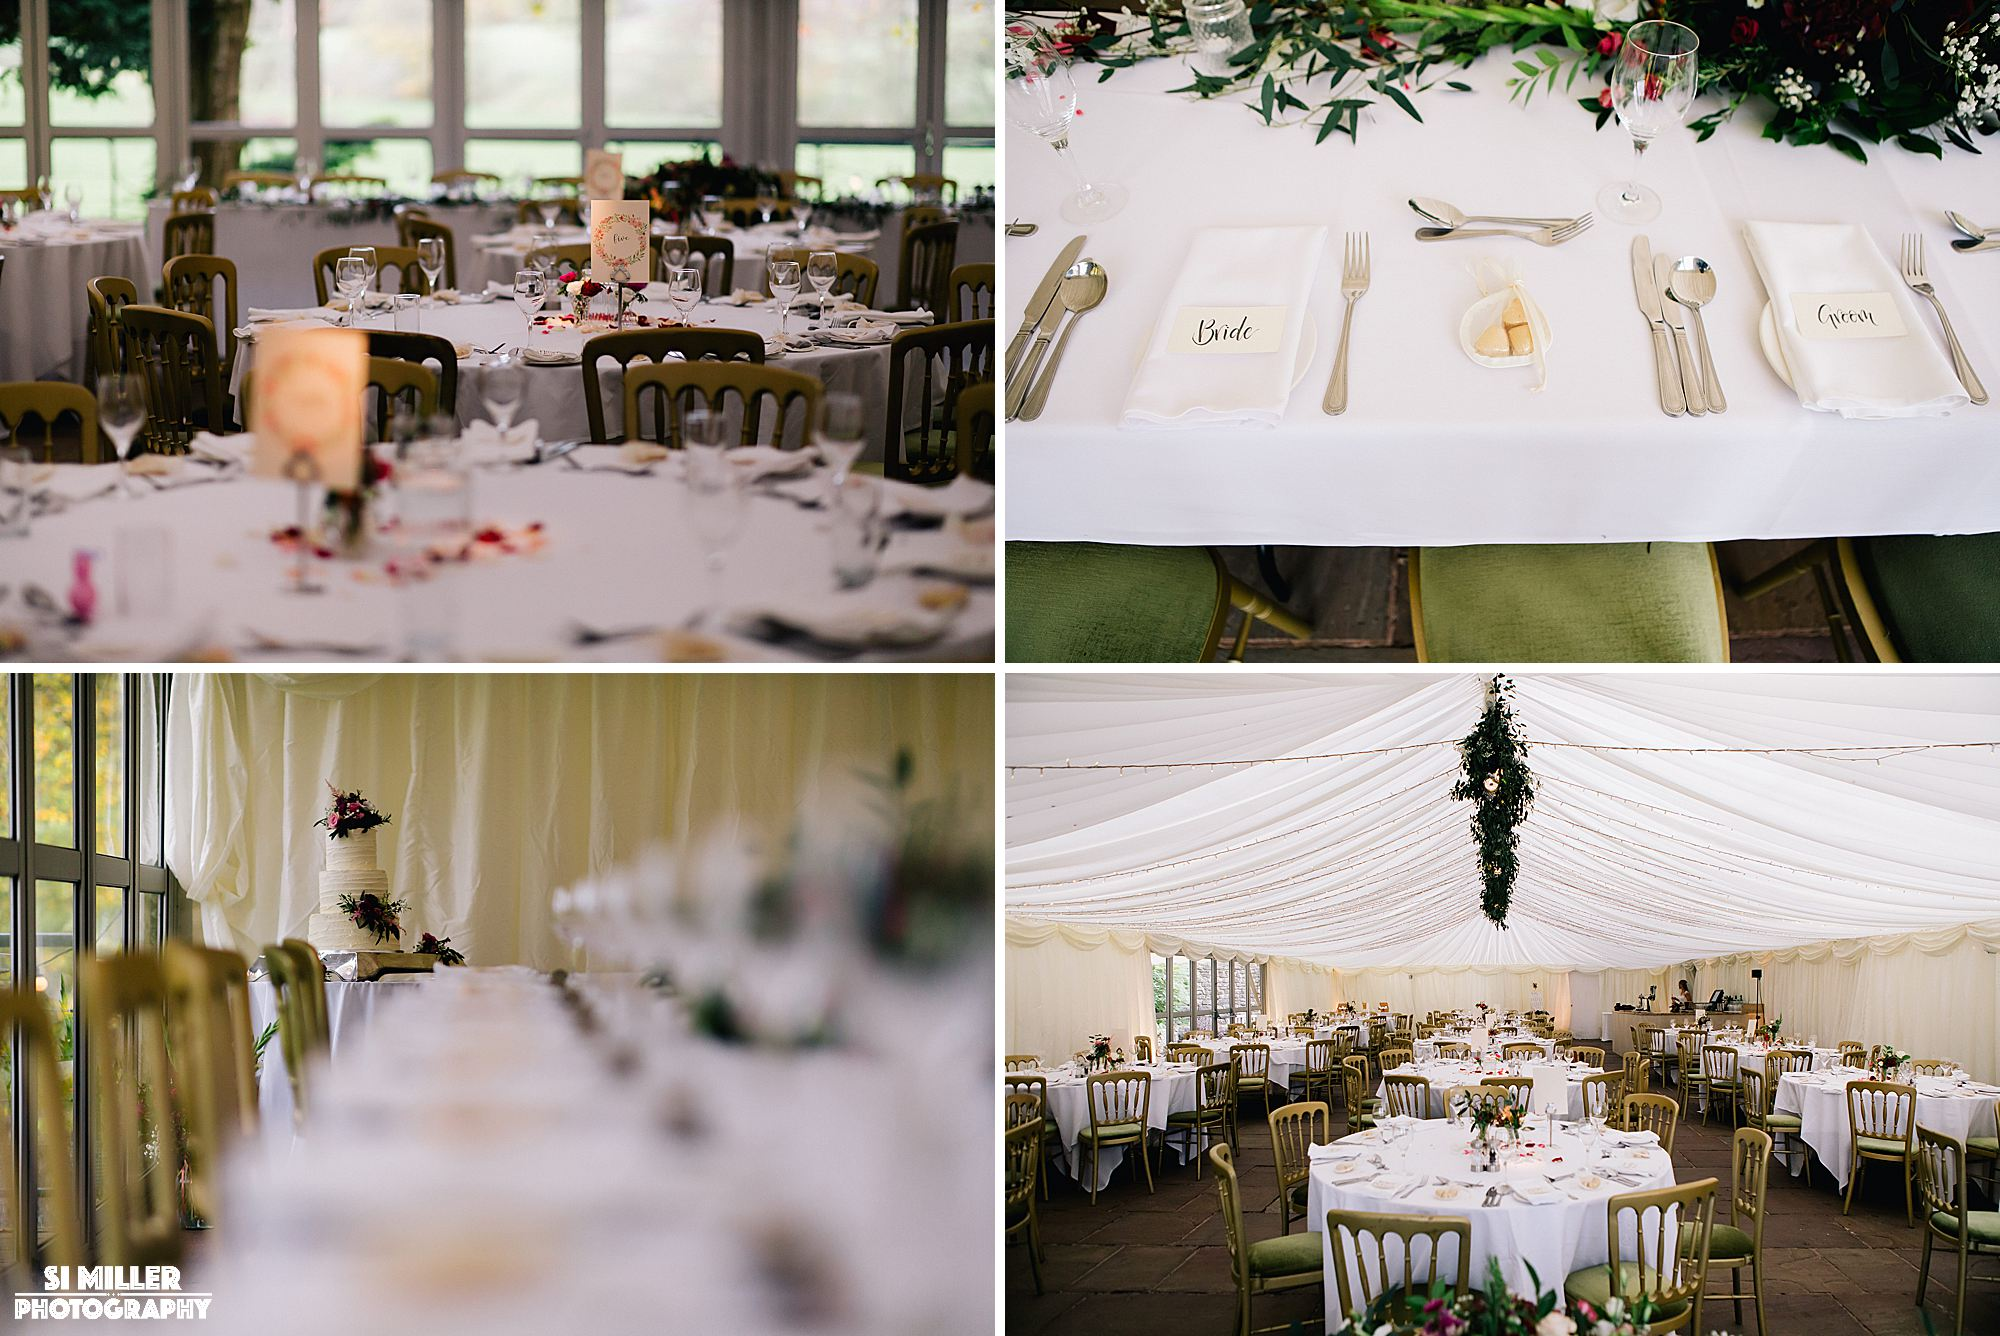 Table decorations in marquee at Inn at Whitewll